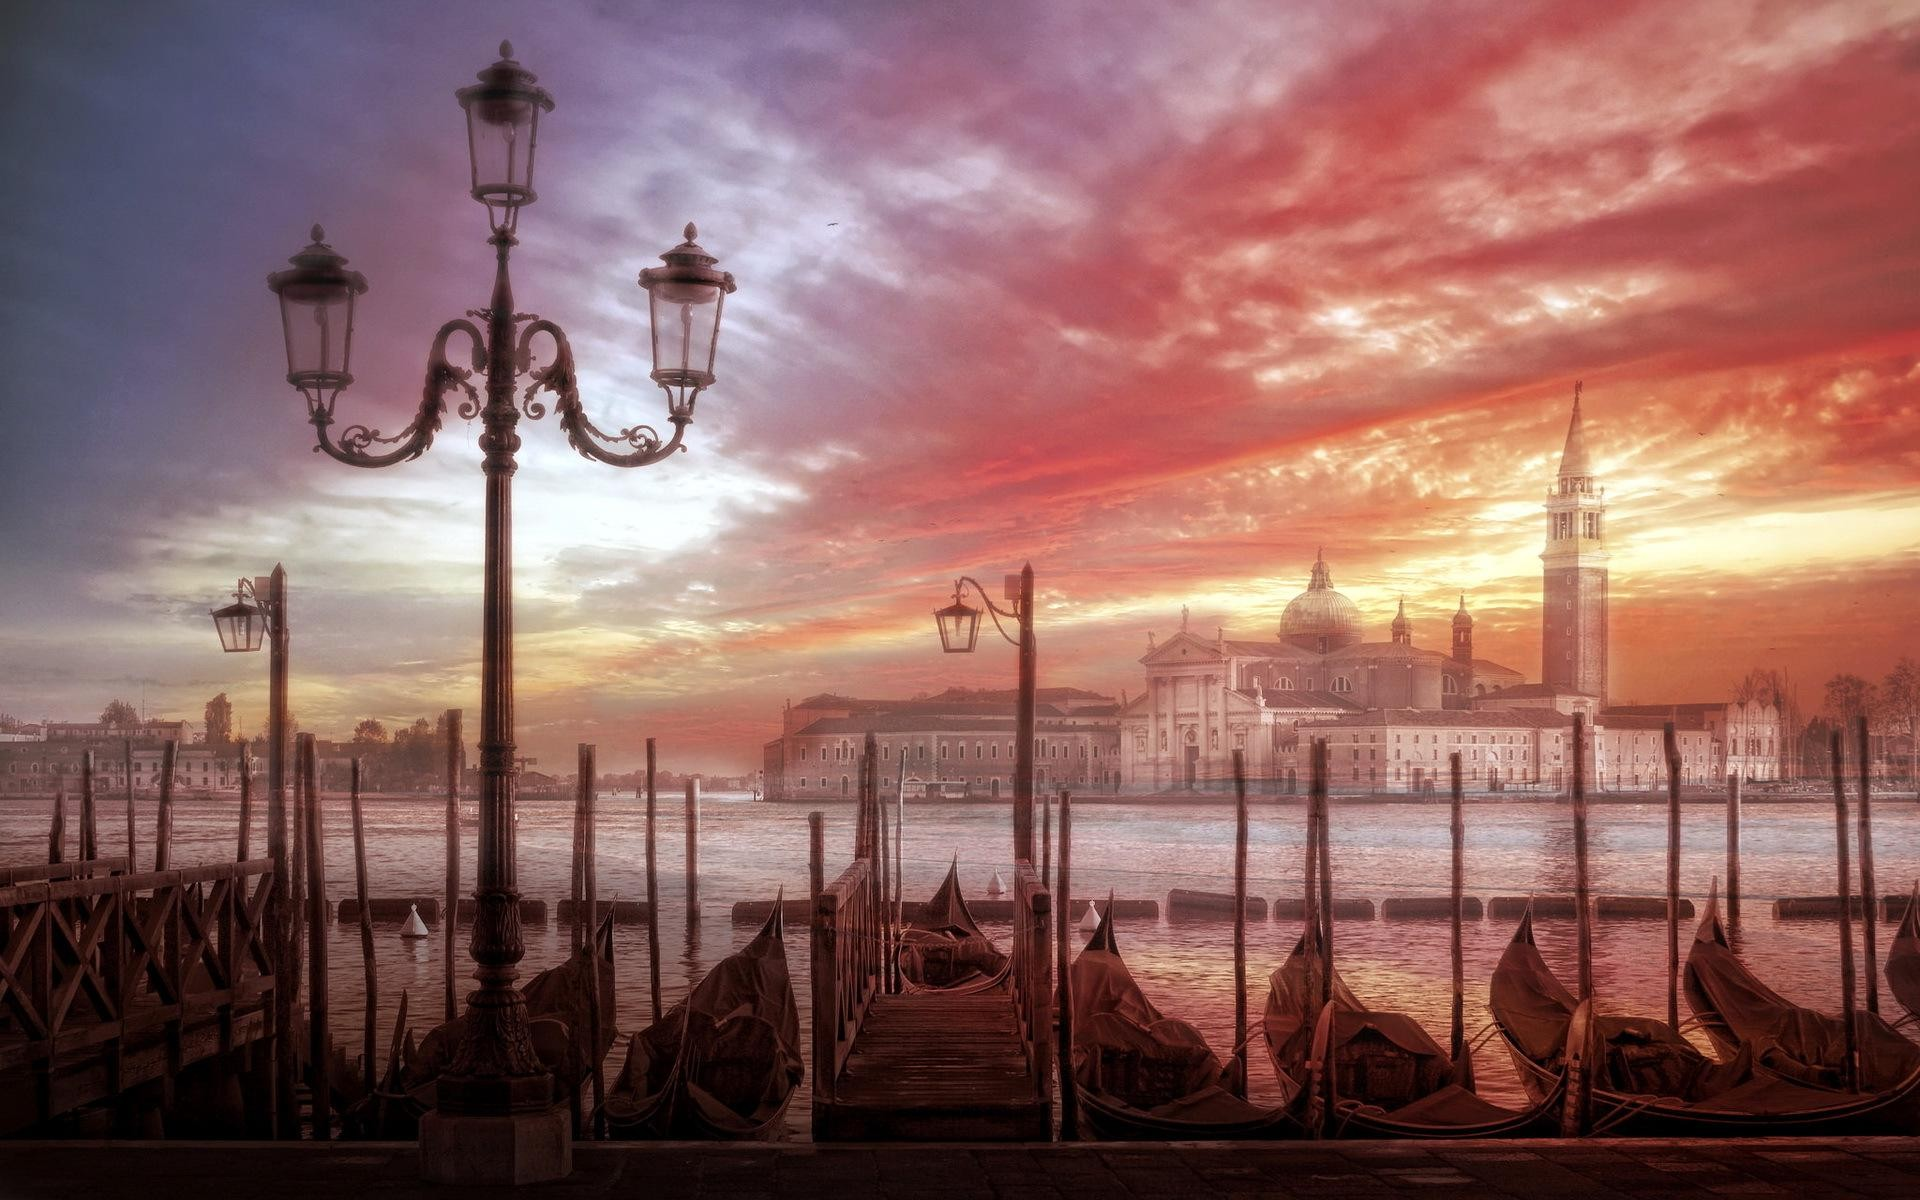 sunset on venice italy chaming pics download